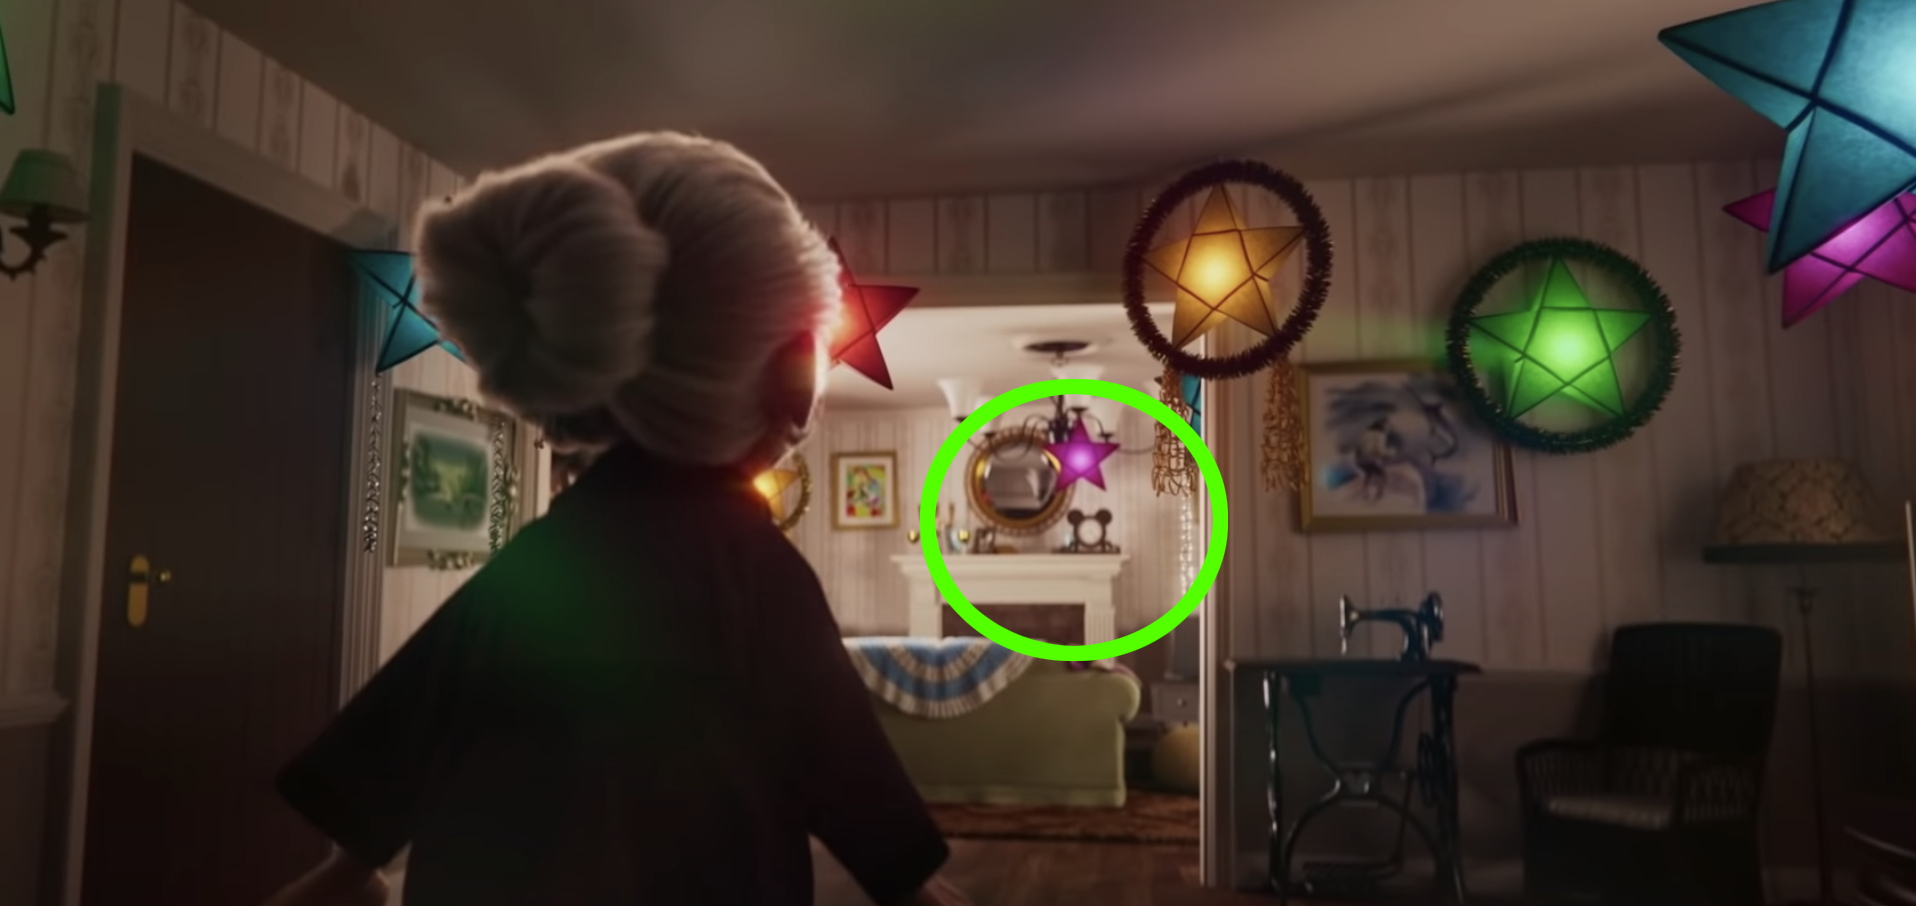 The hidden Mickey is a clock on the grandma's mantle